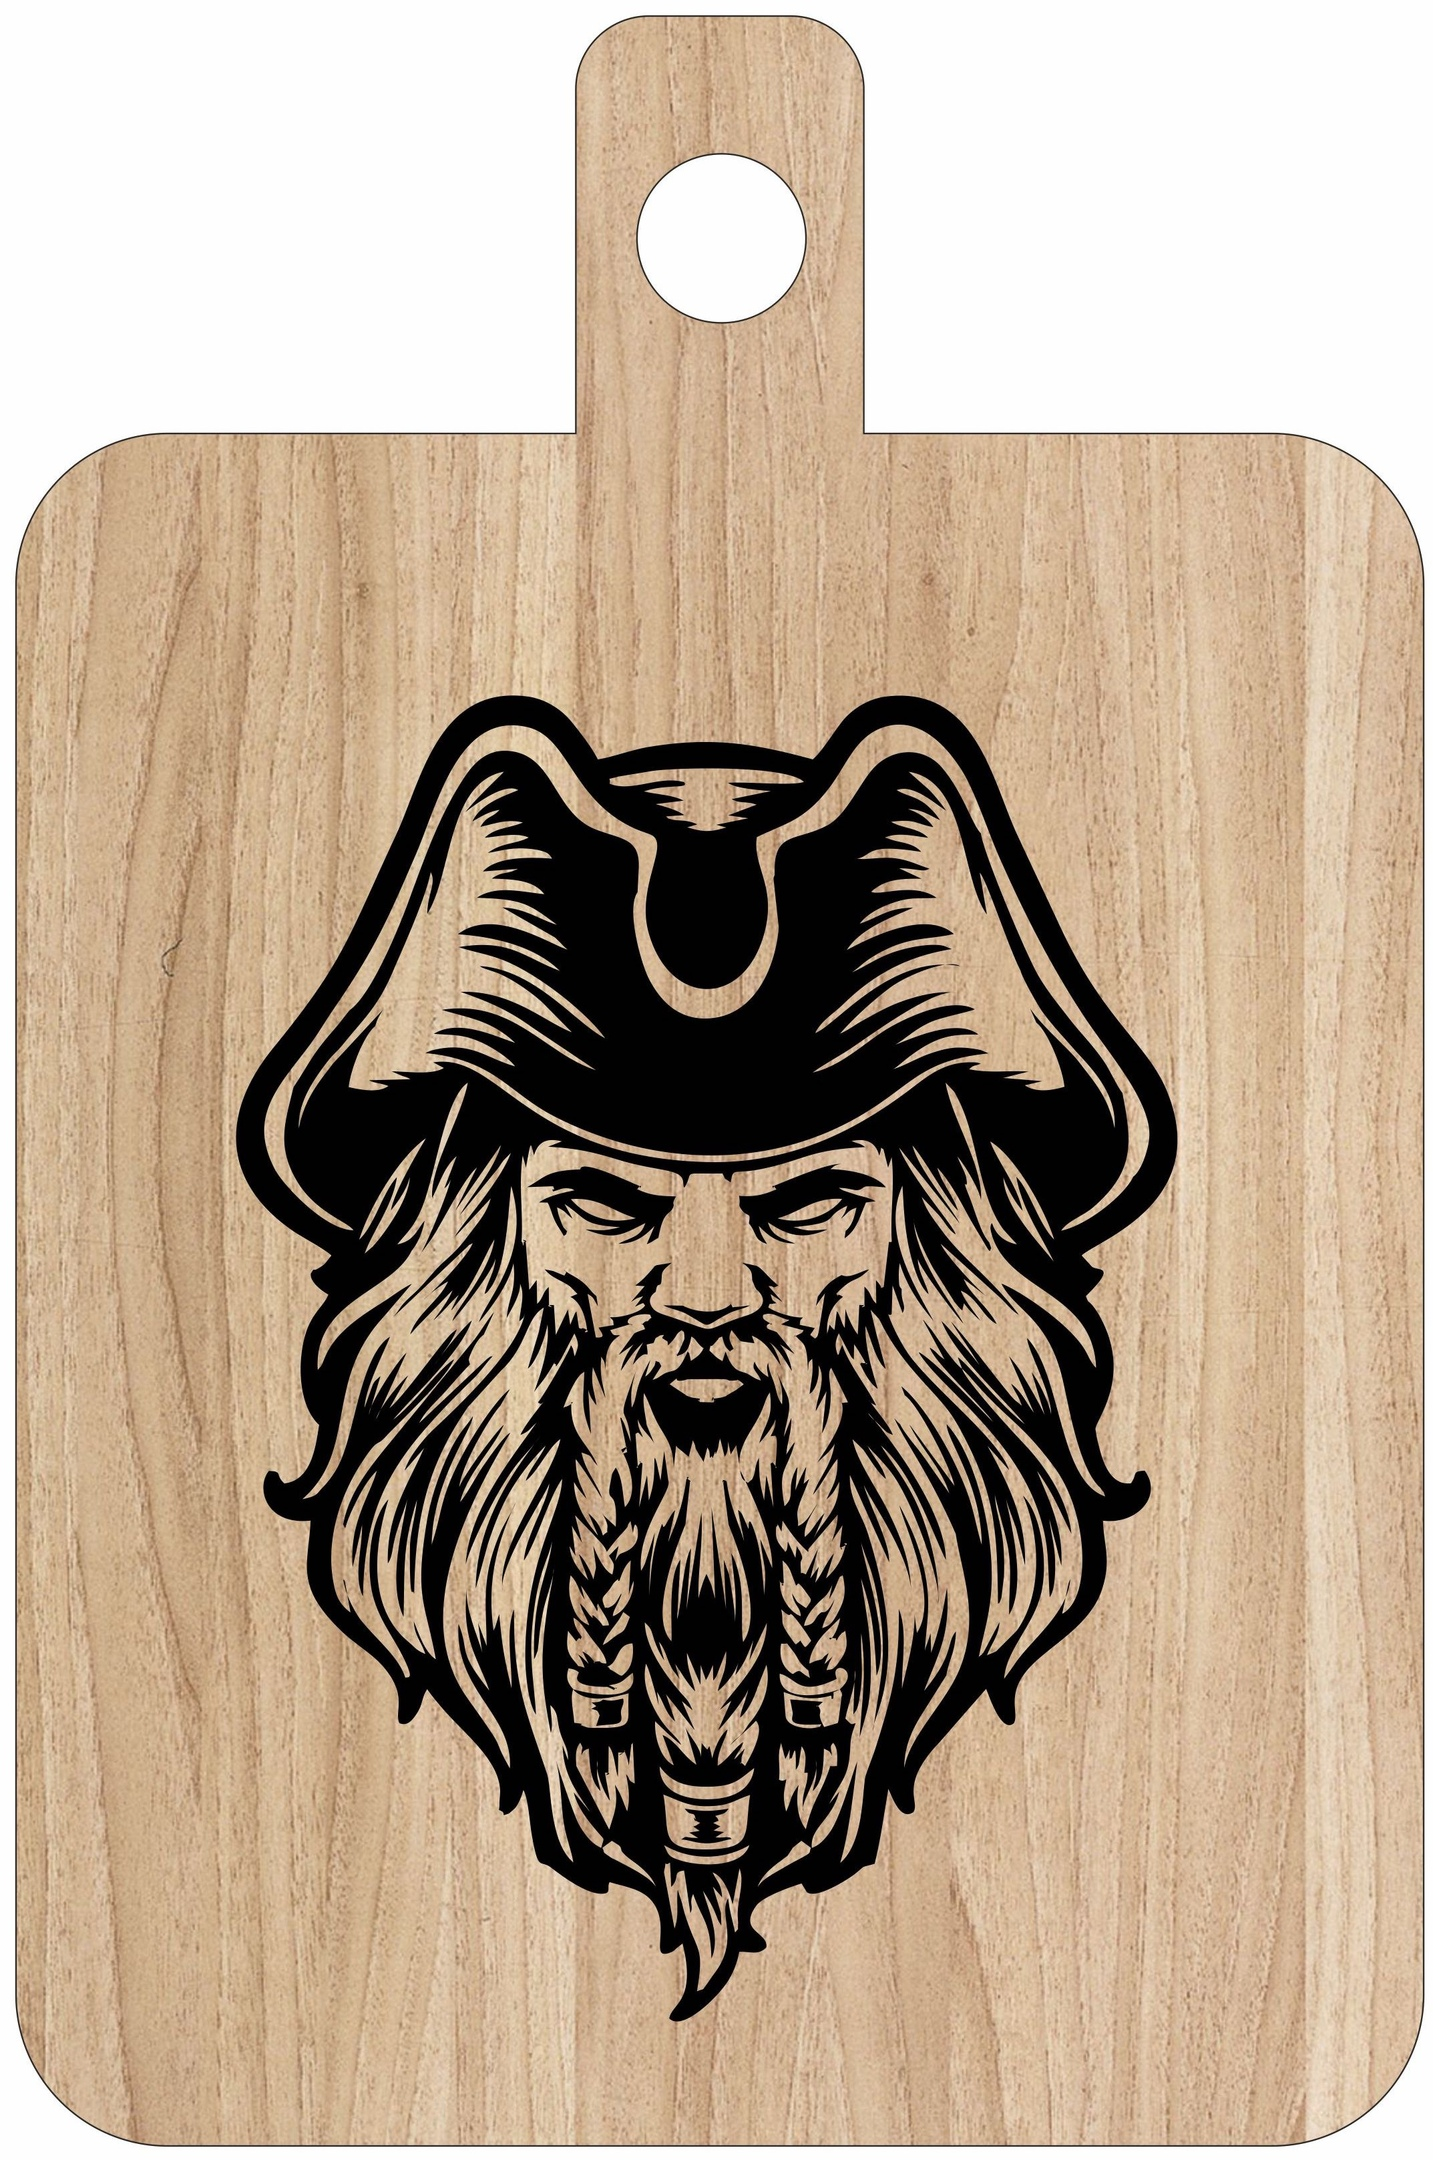 Laser Engraving Pirates Captain Art On Cutting Board Free CDR Vectors Art